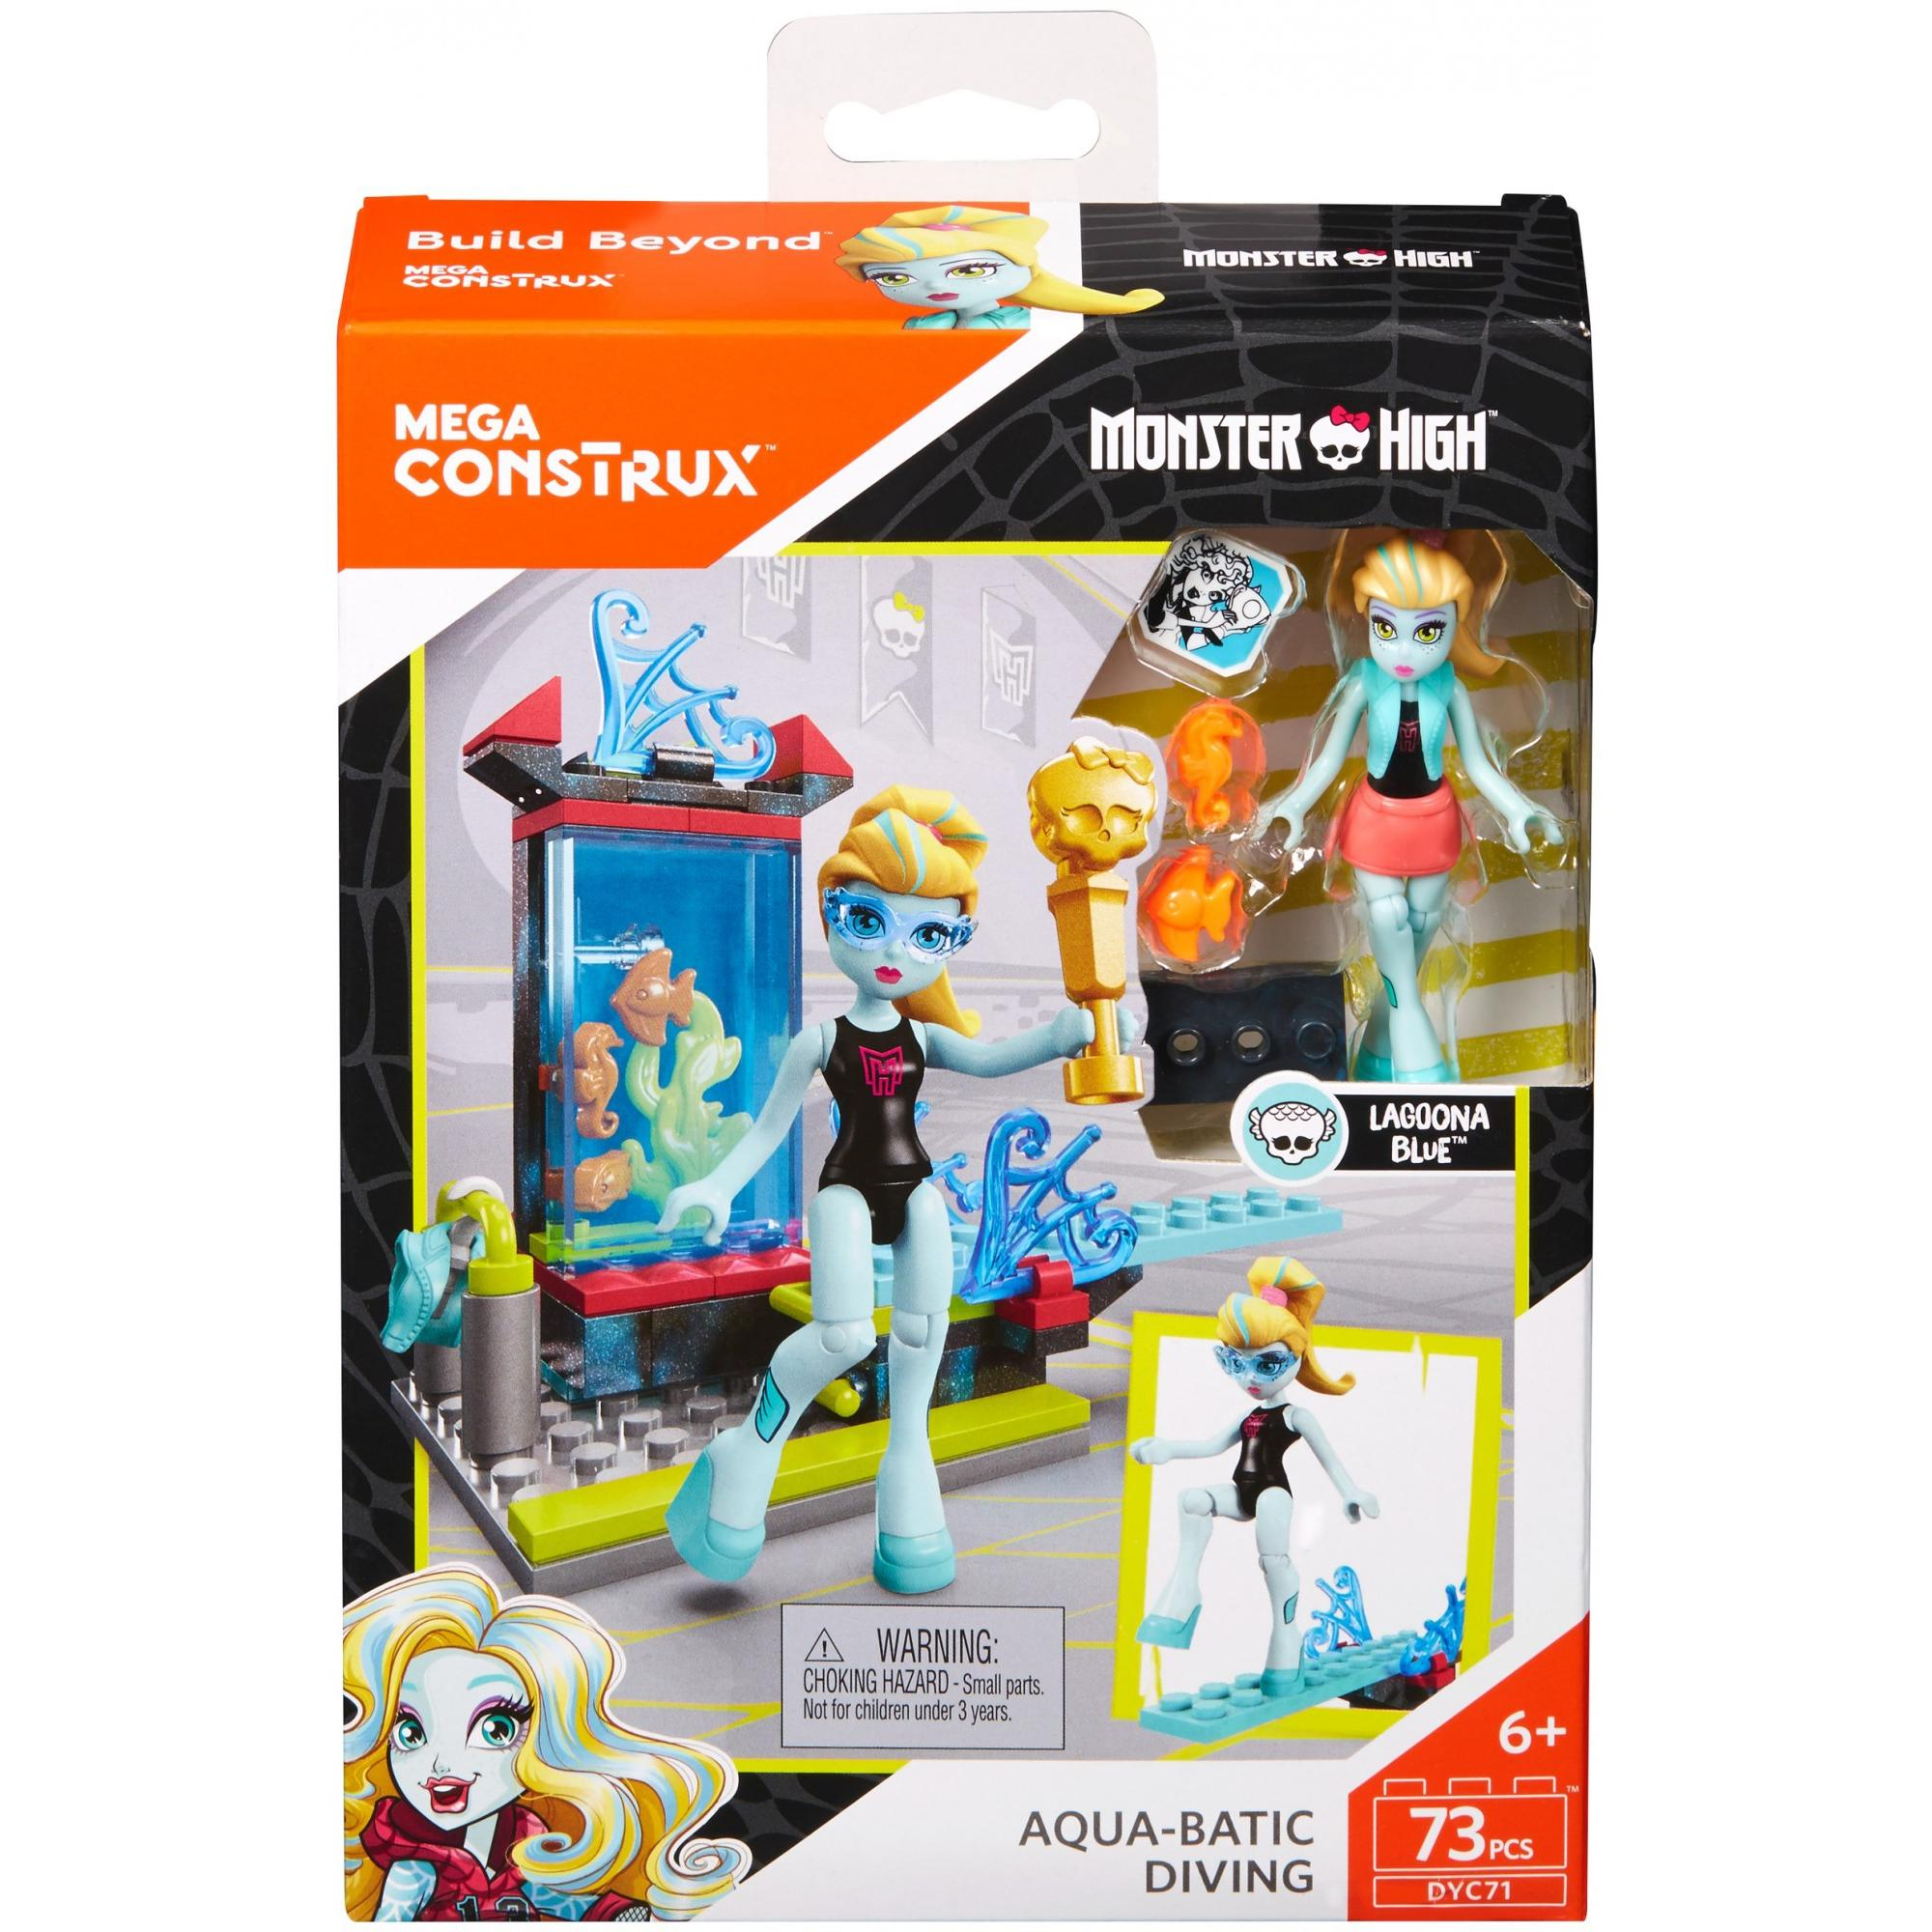 Mega Construx Monster High Creeperific Lagoona's Diving Competition Building Set by MATTEL INC.